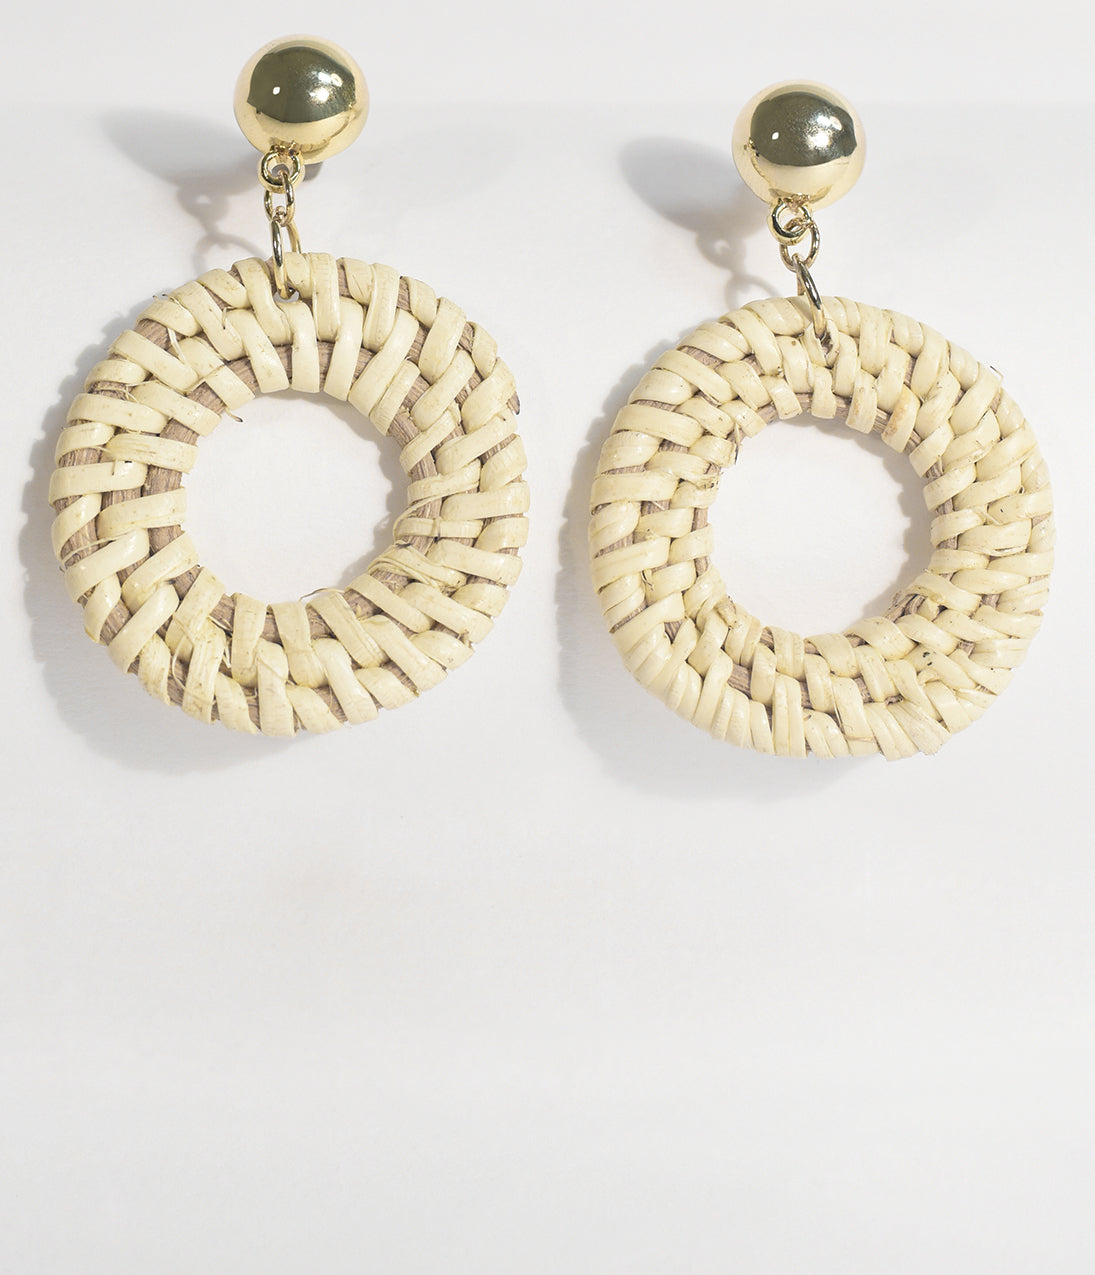 Vintage Style Jewelry, Retro Jewelry Ivory Woven Wicker Hoop Earrings $16.00 AT vintagedancer.com